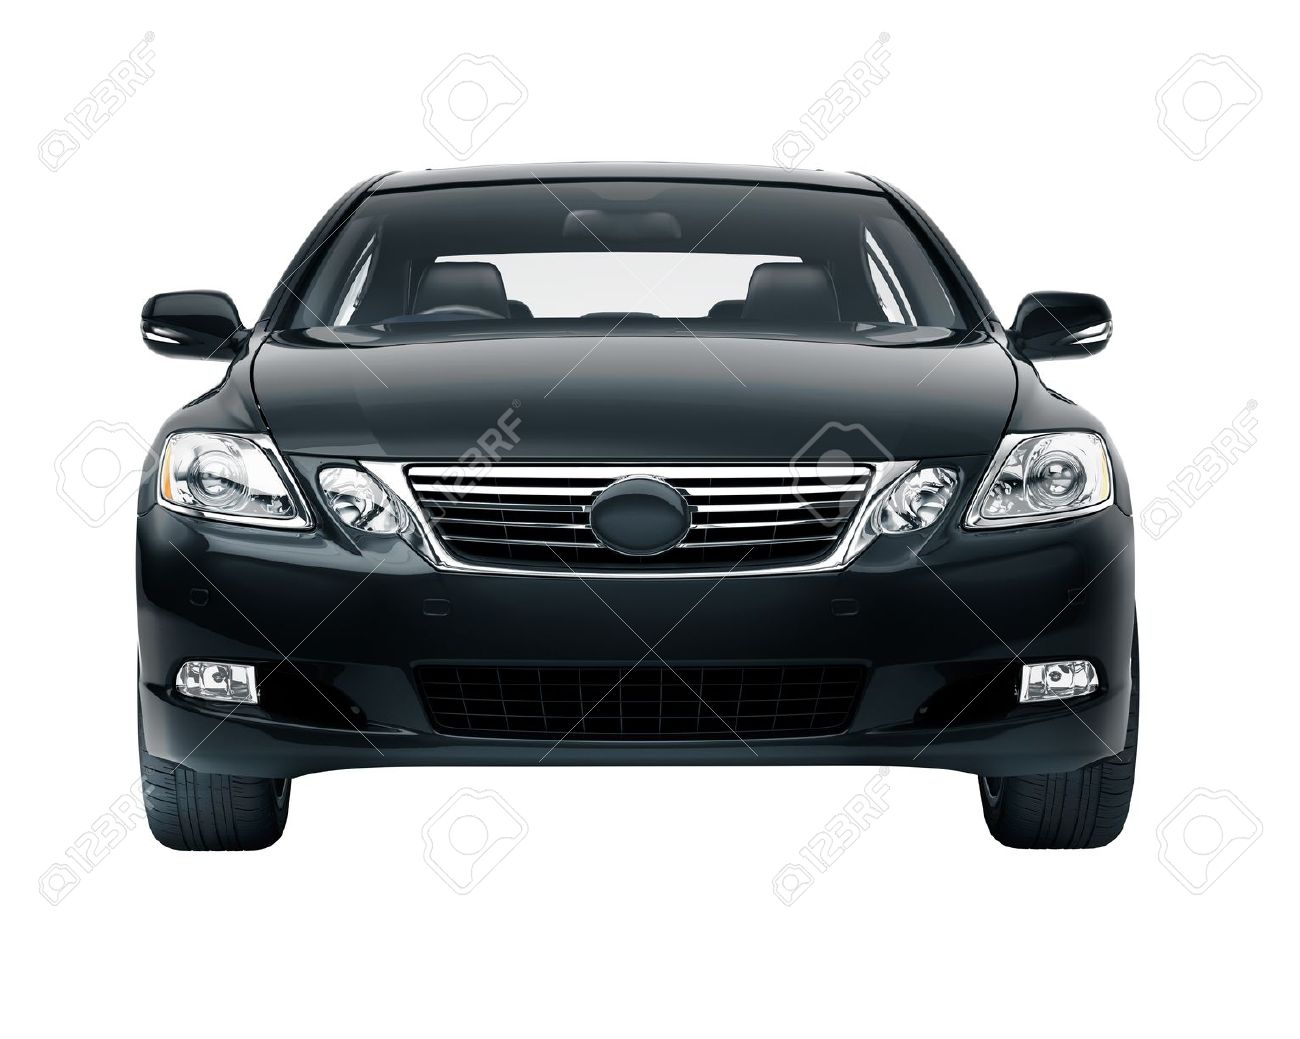 Luxury Car In The Studio On A Light Background Stock Photo Picture